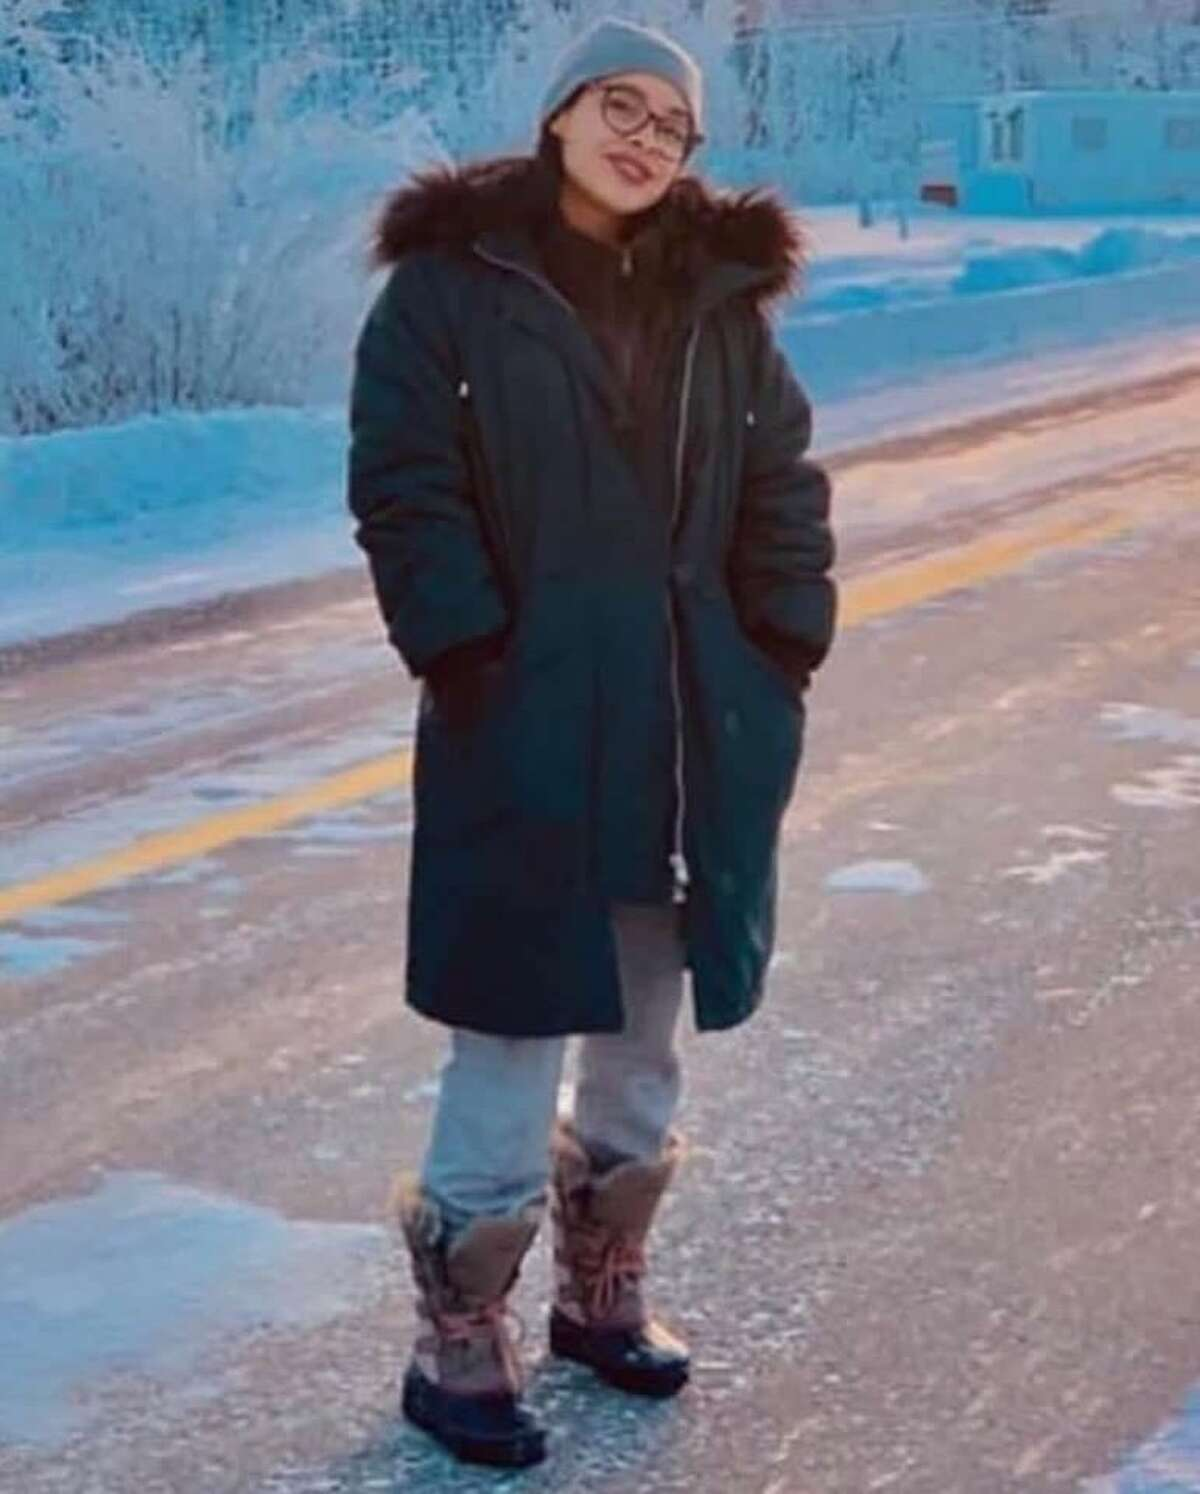 Valerie Reyes, 24, of New Rochelle, N.Y., has been identified as the victim found dead beside a Greenwich road, police said.